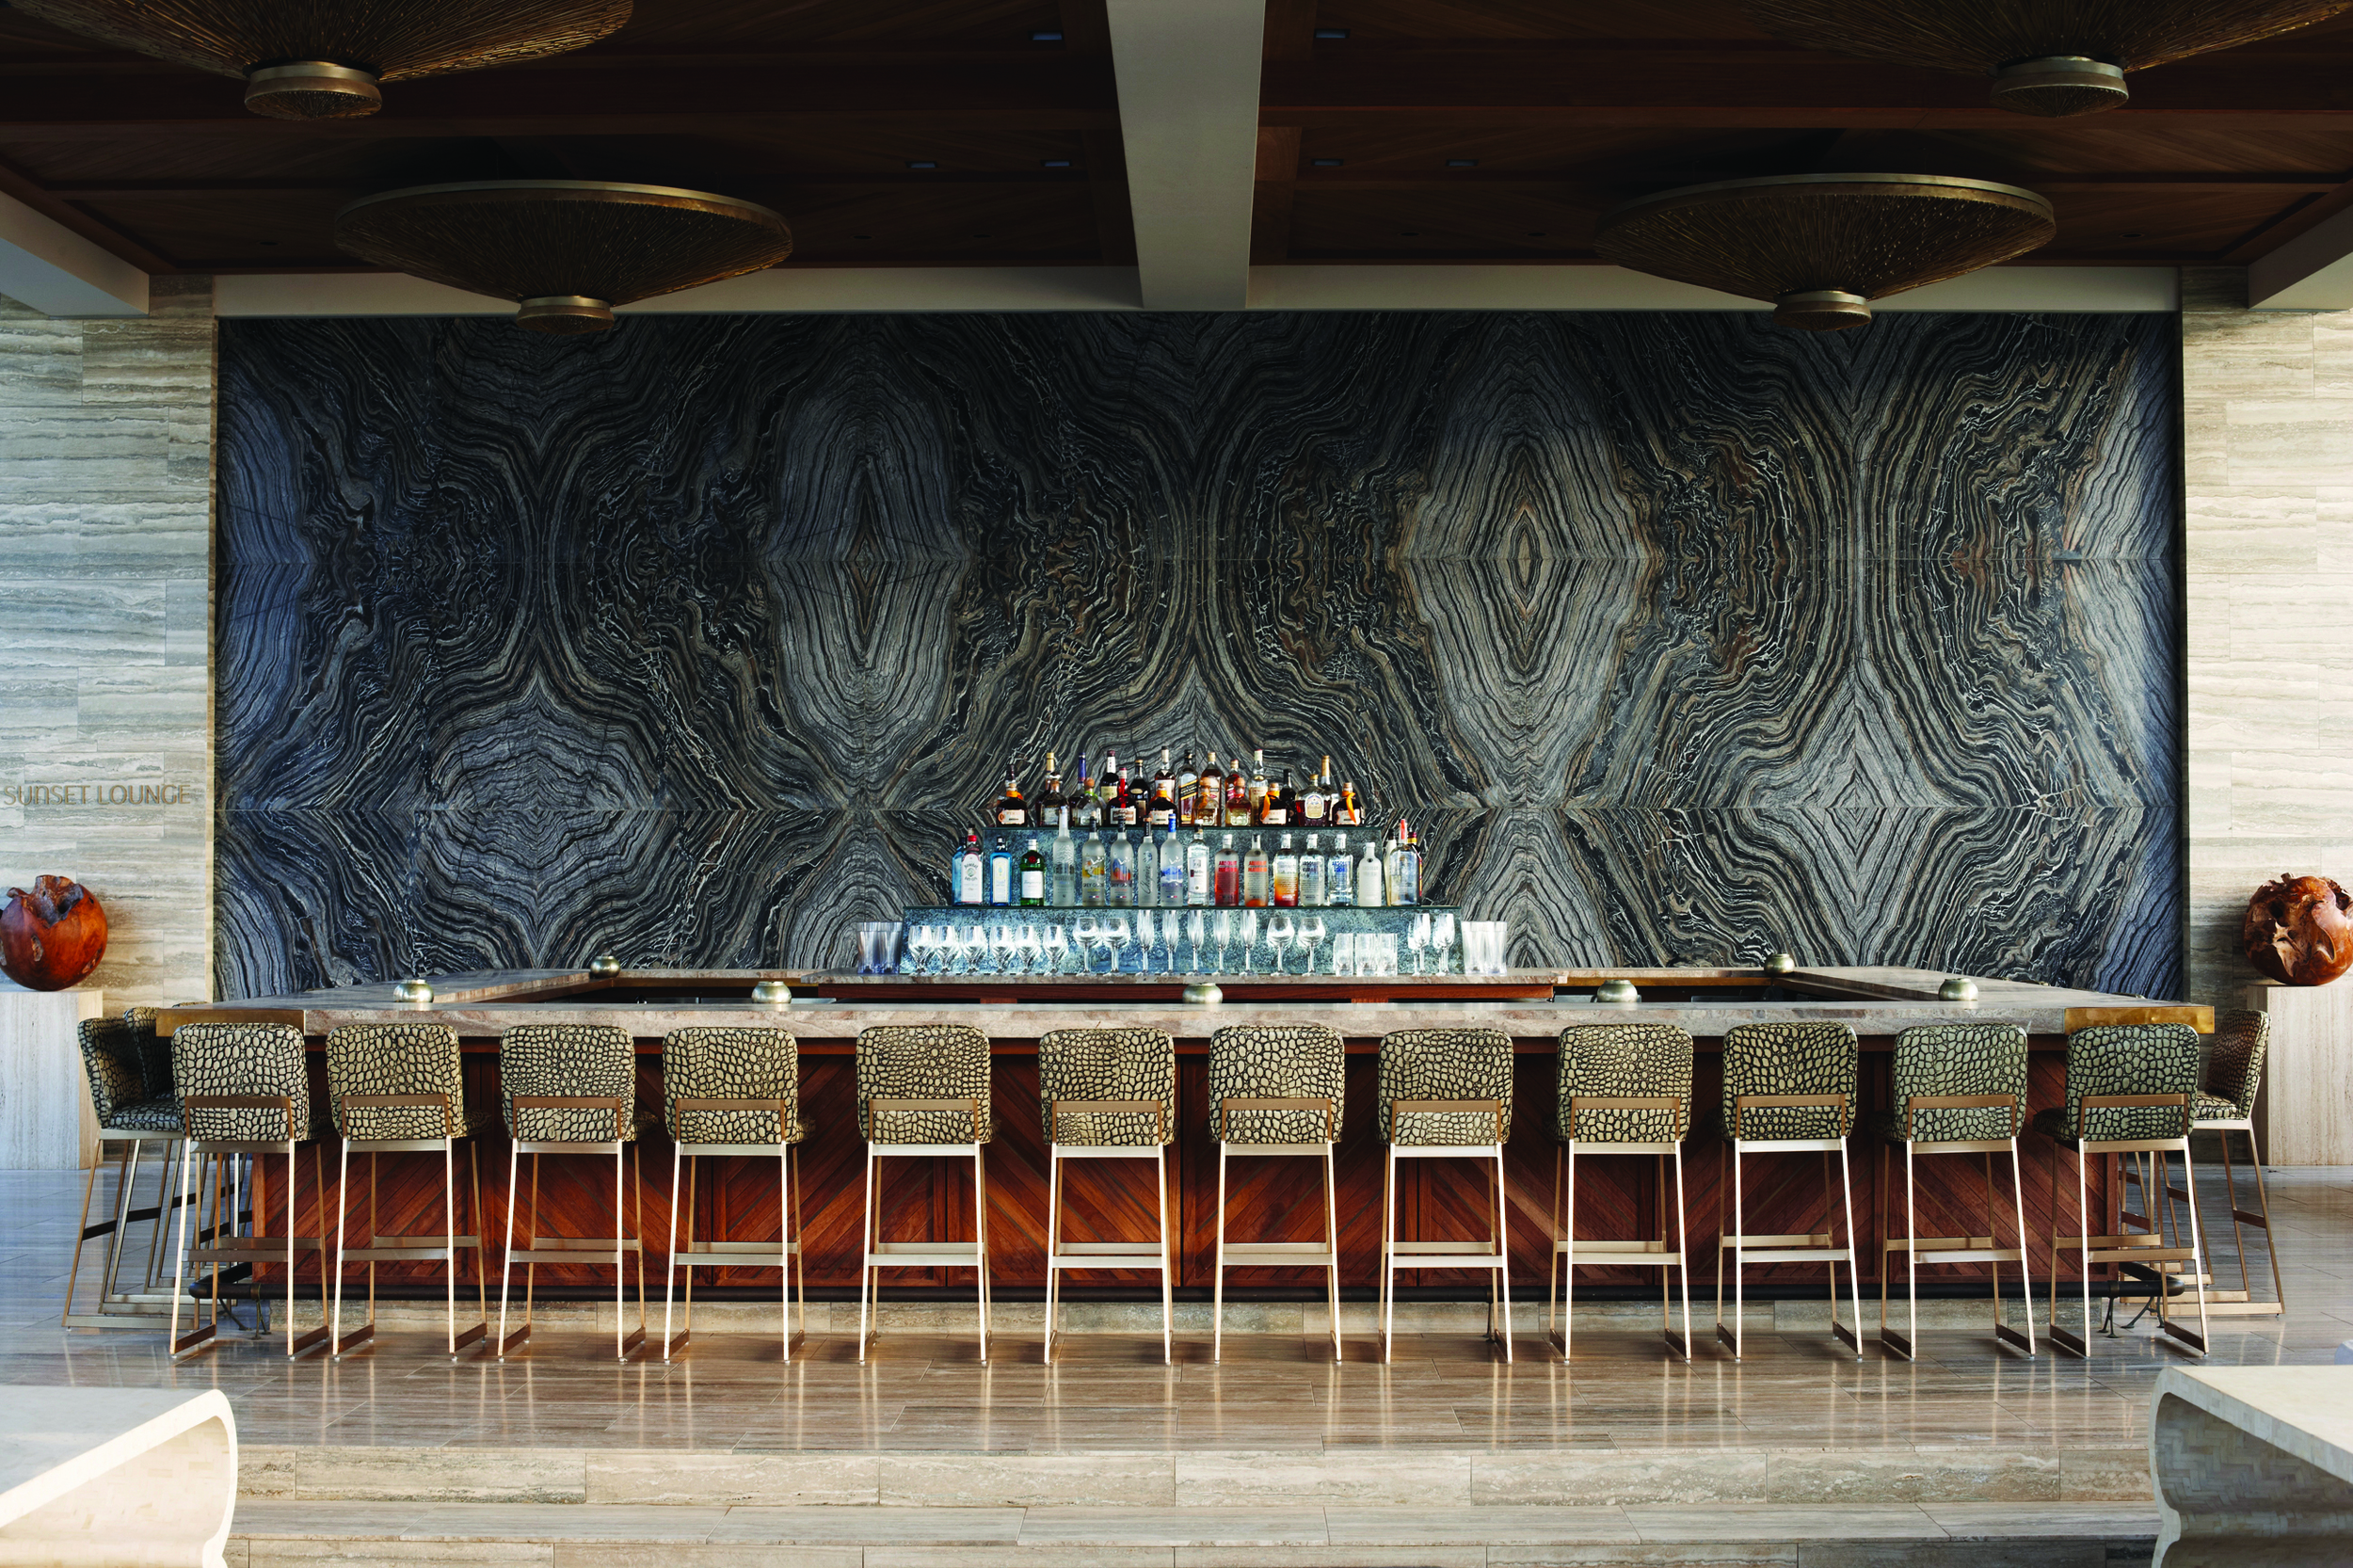 The Sunset Bar at the Viceroy Hotel in Anguilla, designed by Wearstler.